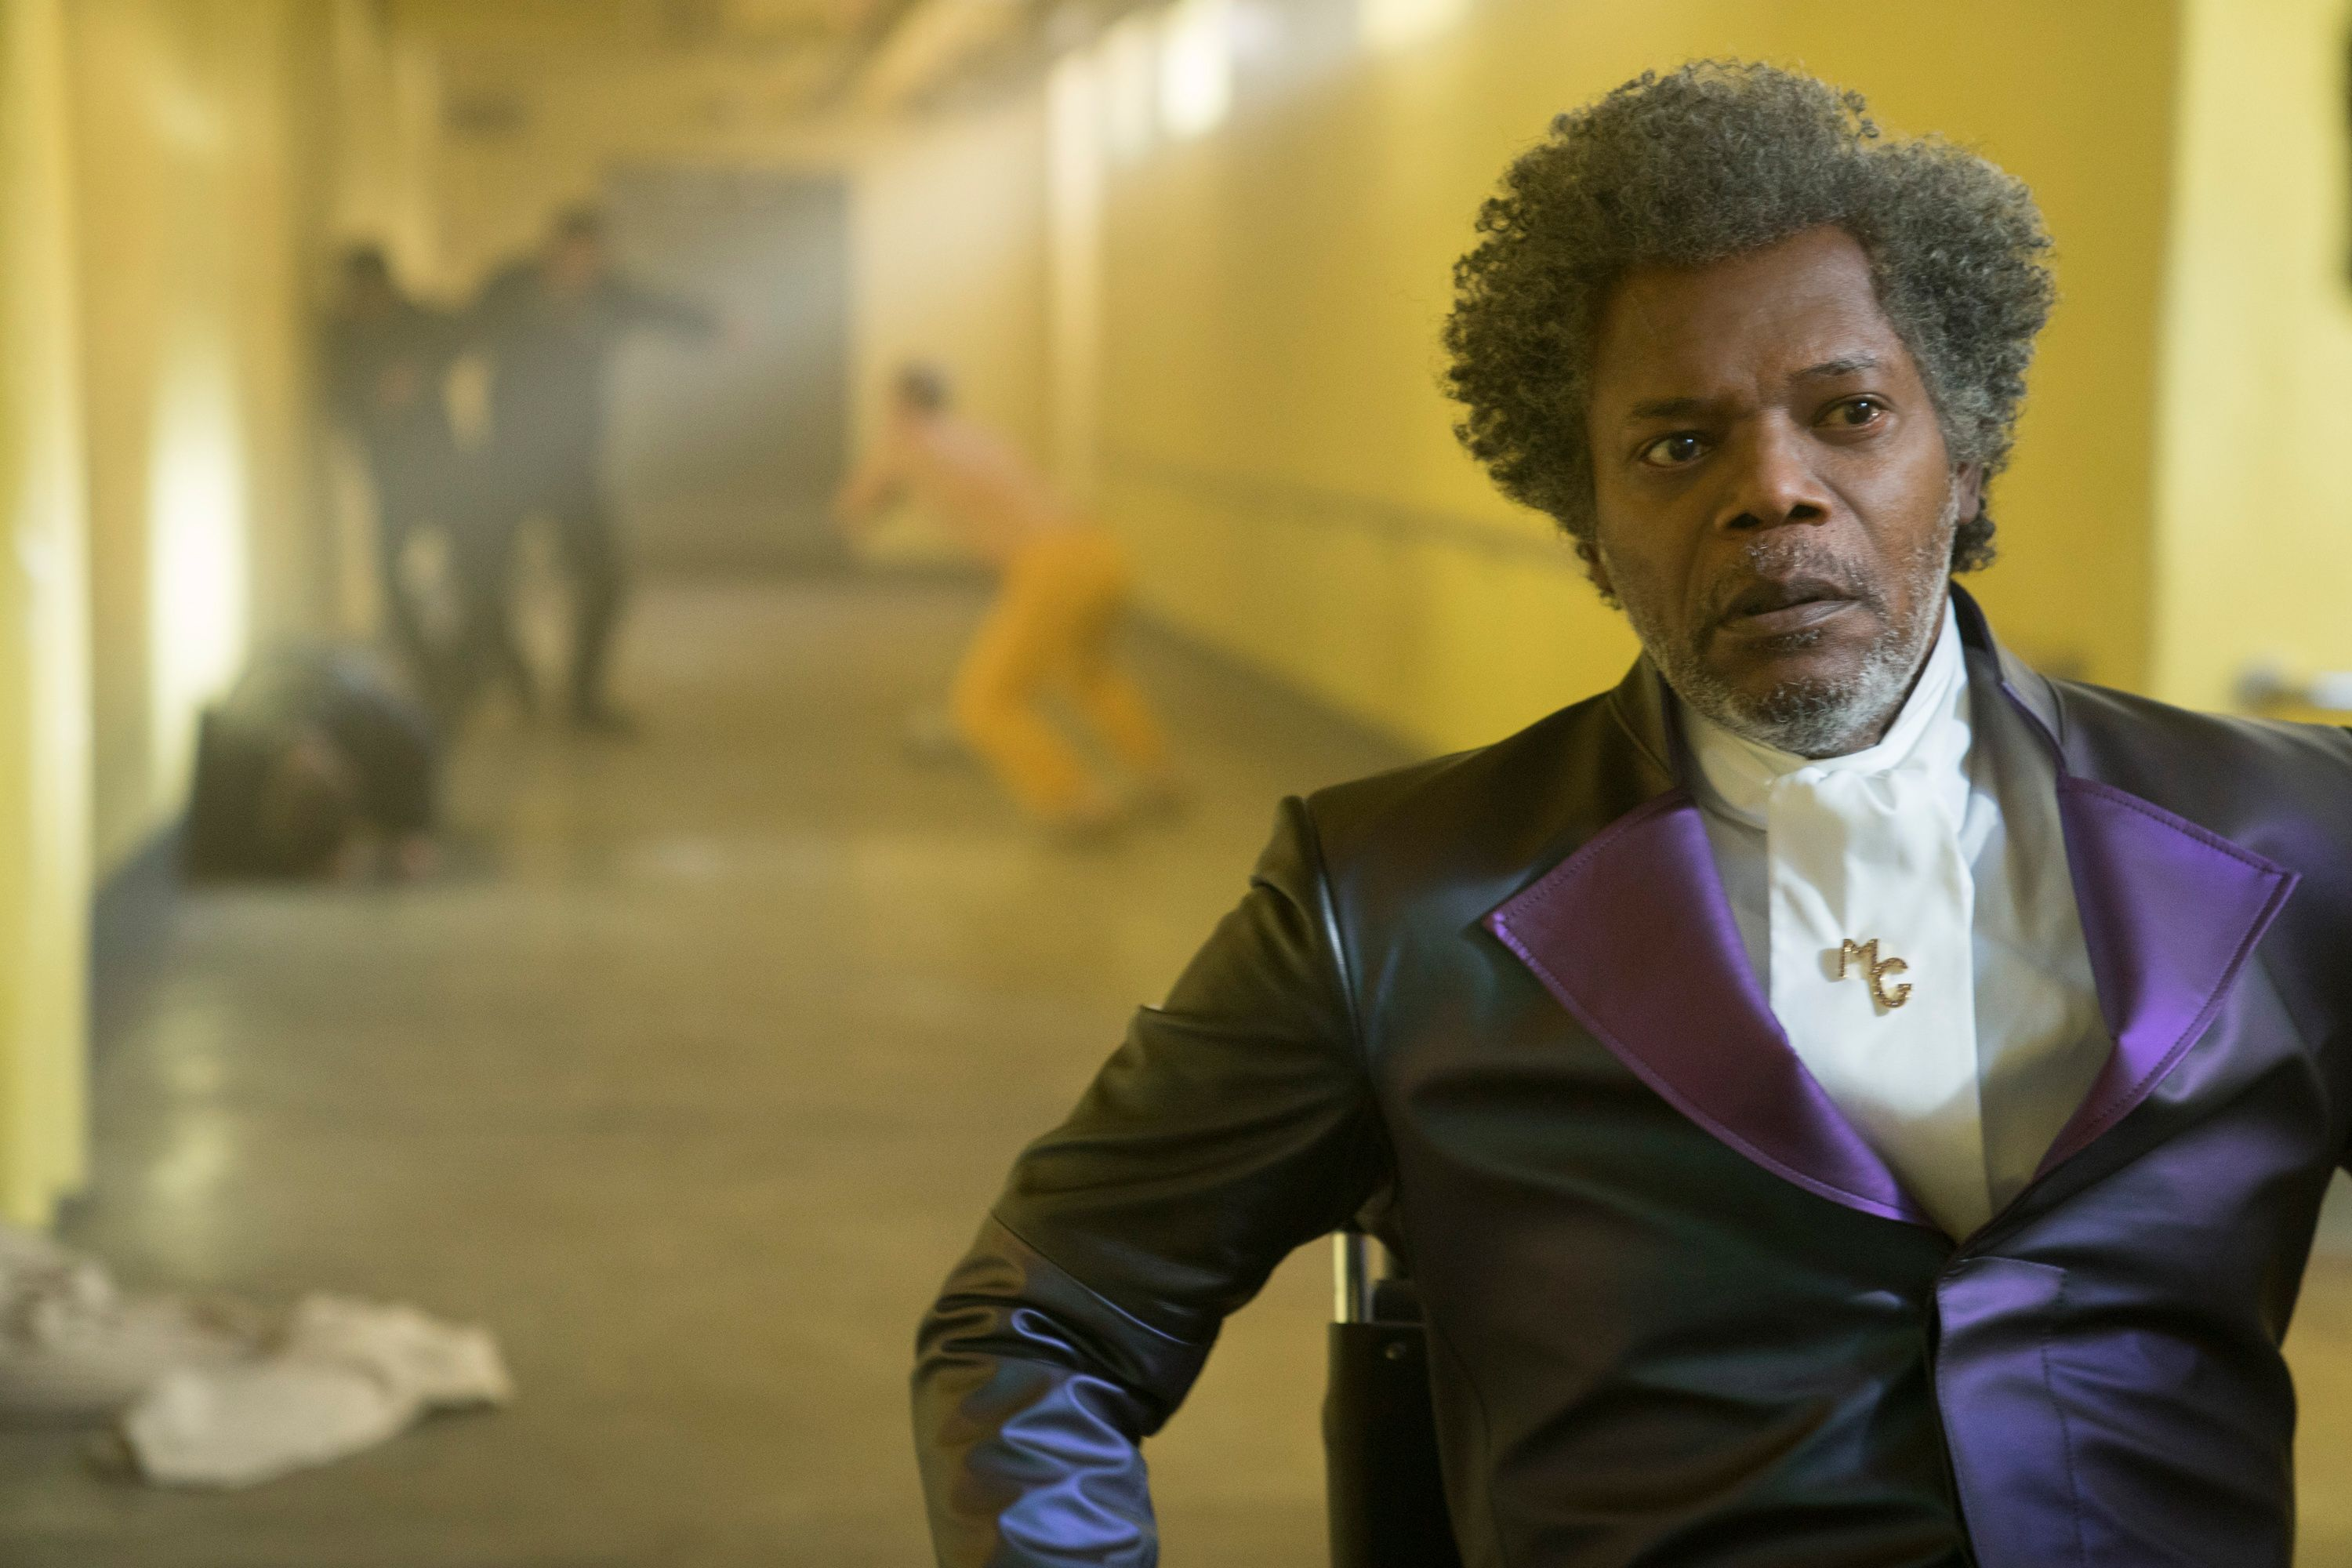 Almost twenty years in the making, M. Night Shyamalan's latest is an anti-climactic end to a film franchise that never really announced itself.